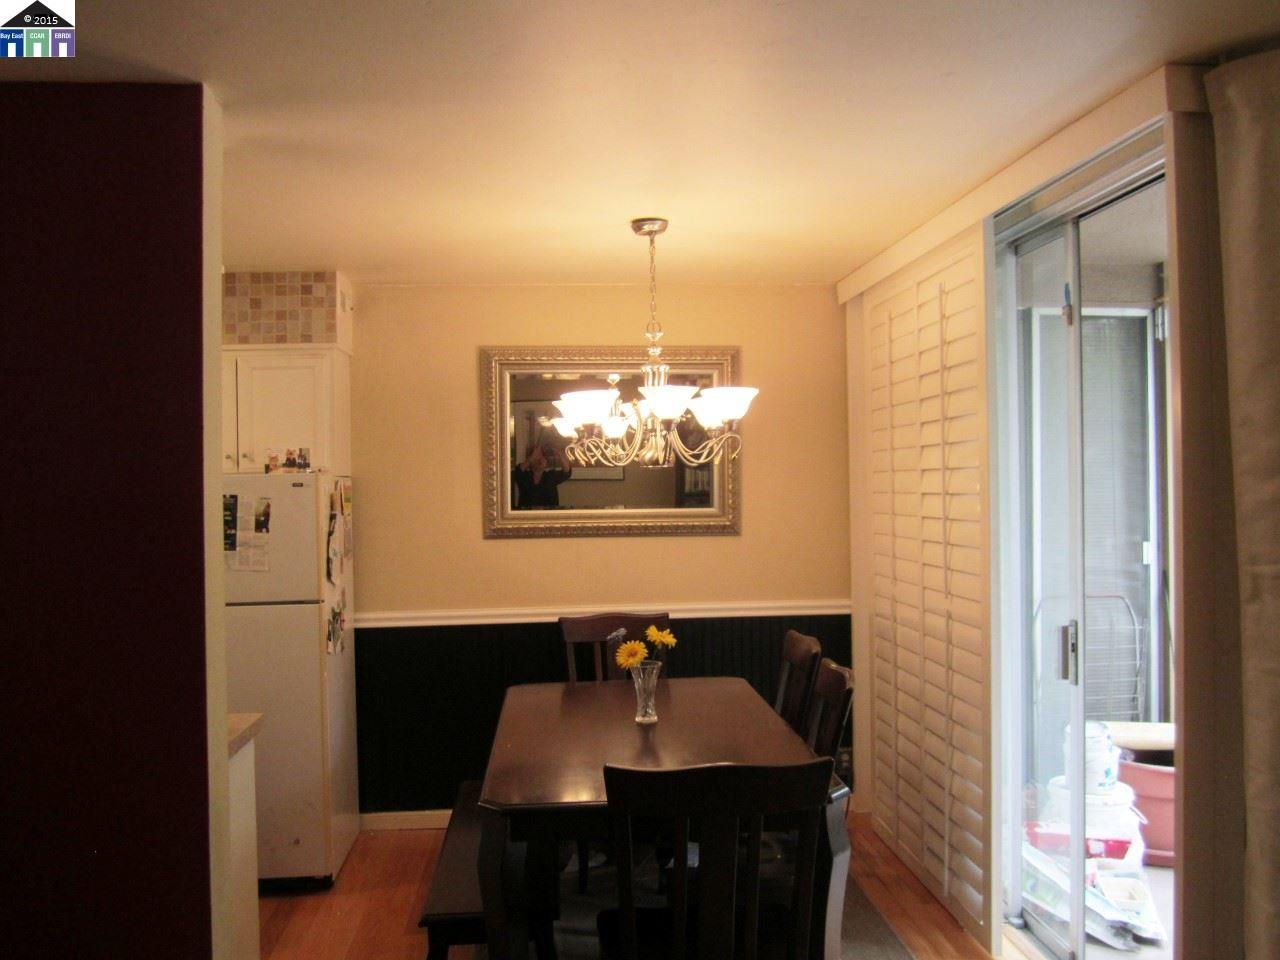 Additional photo for property listing at 5343 Broadway Terrace  Oakland, California 94618 Estados Unidos